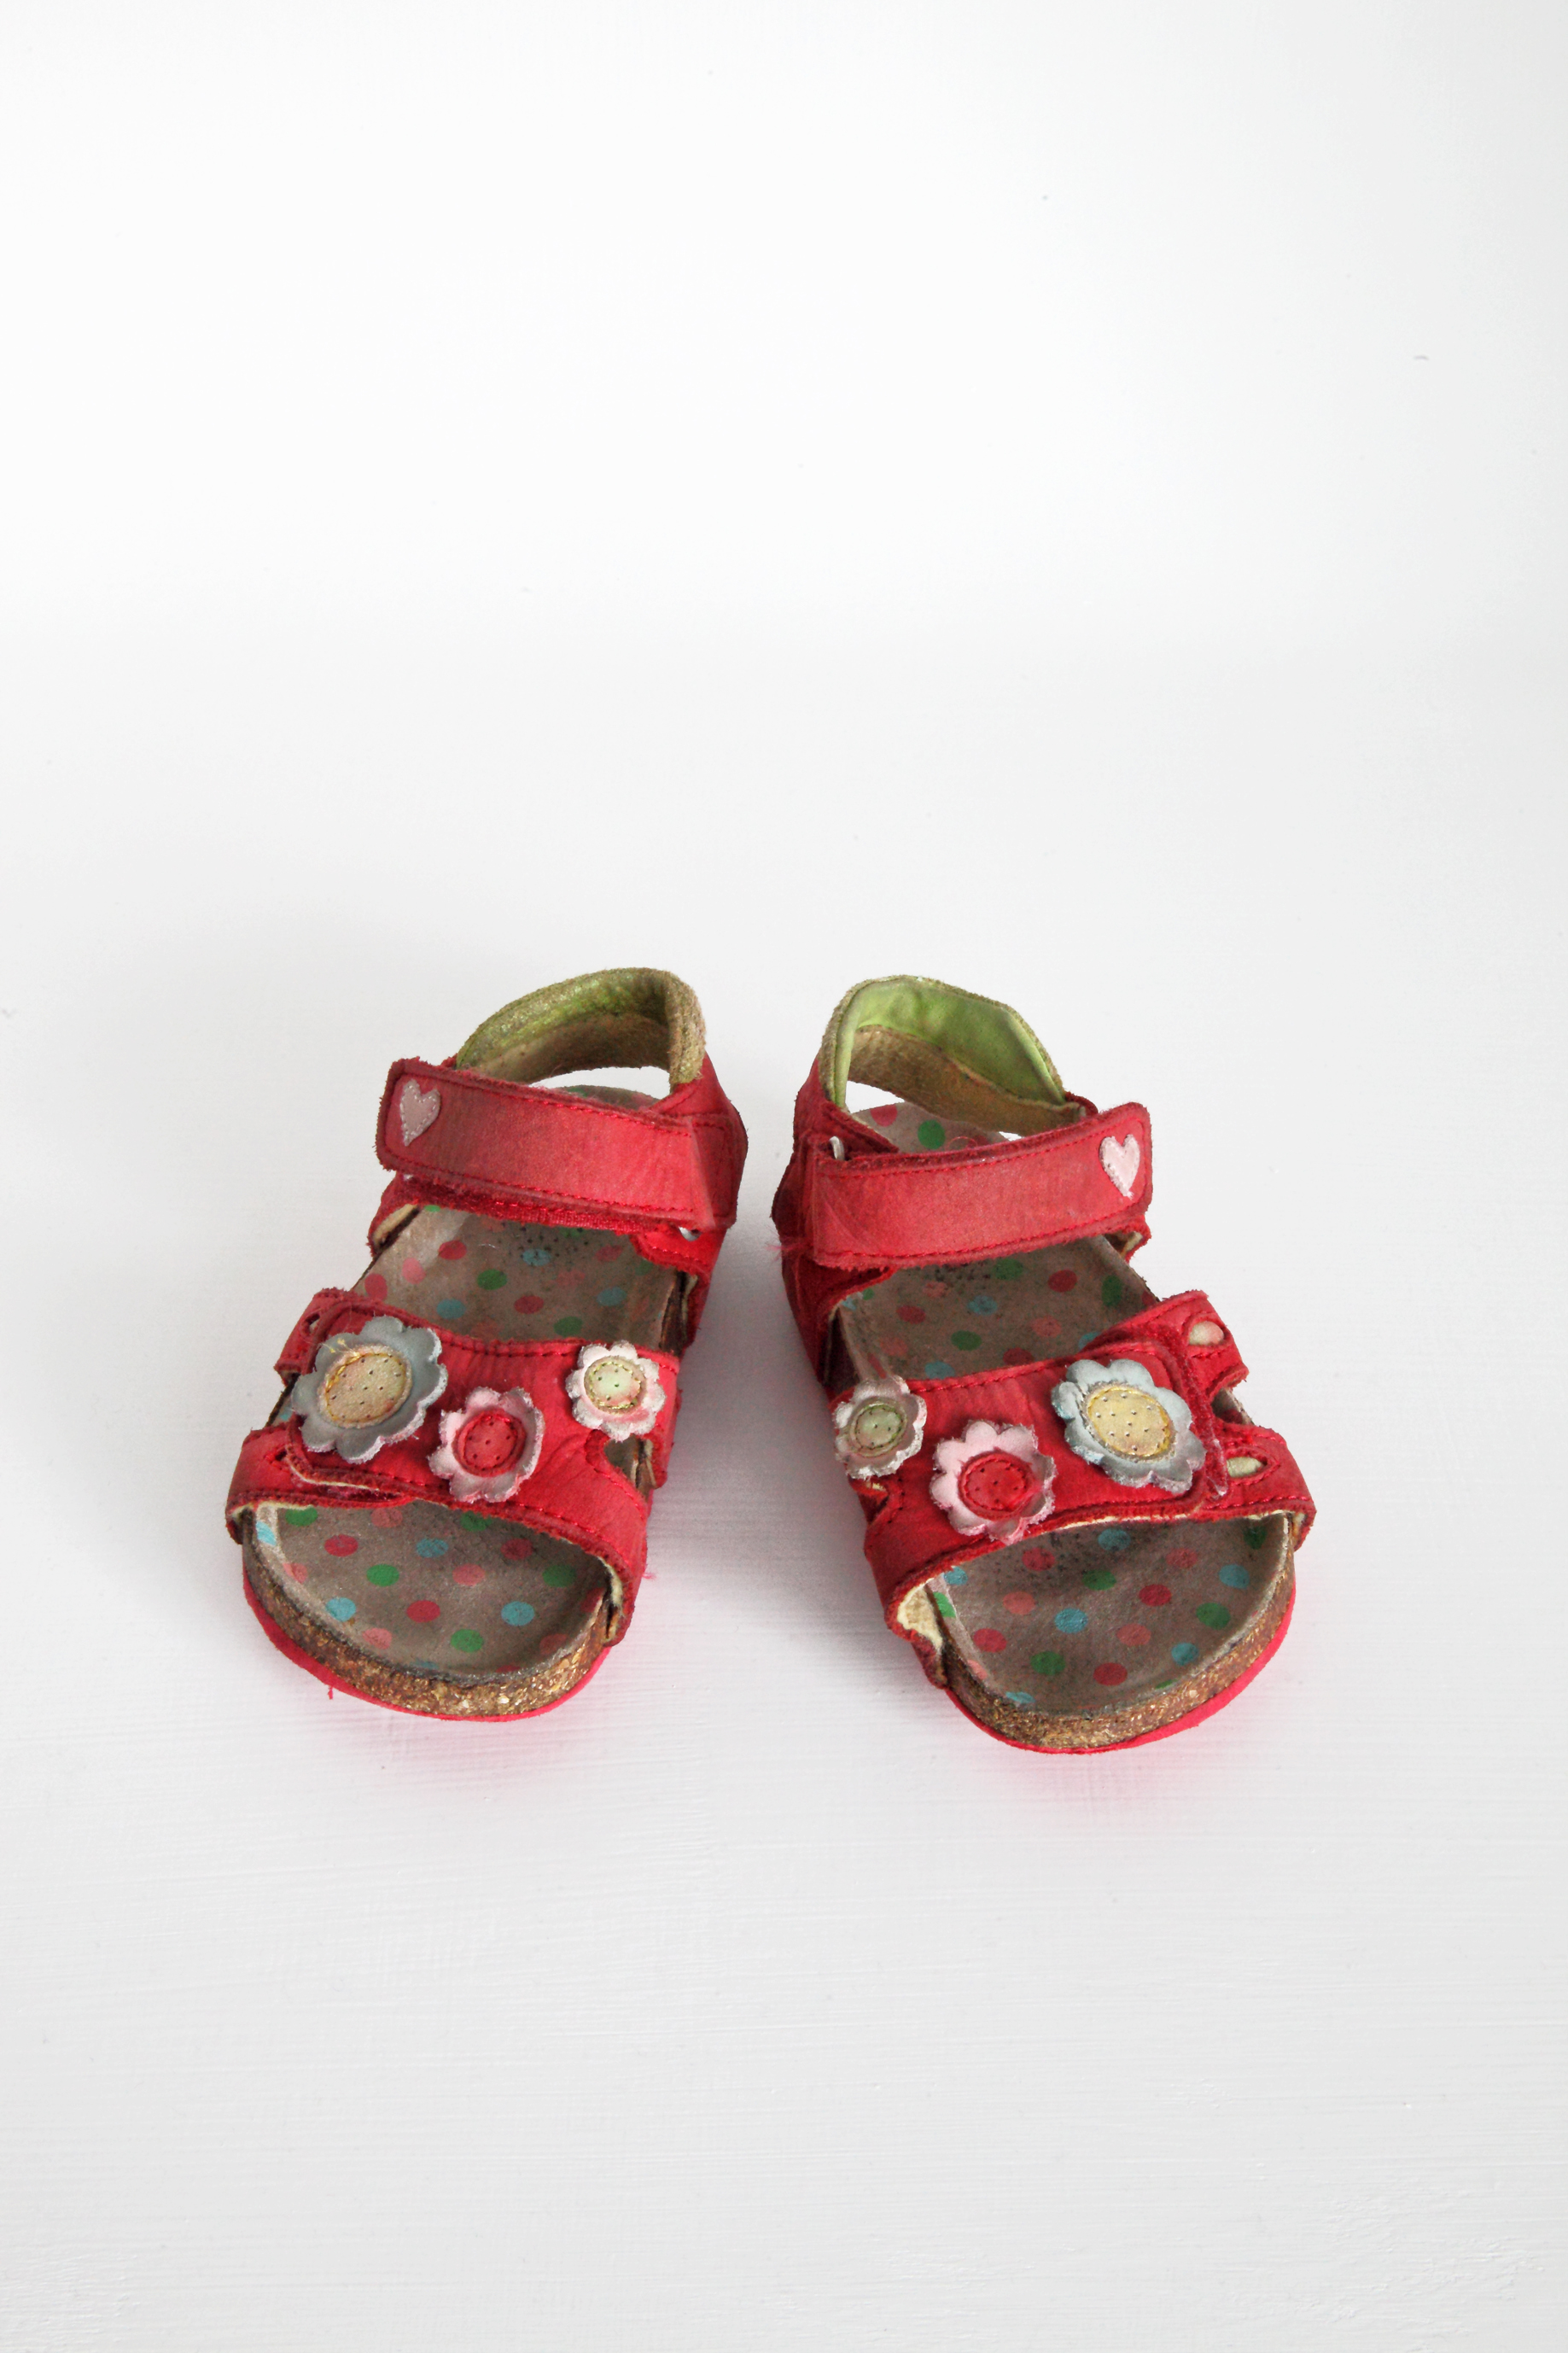 Red Flower Sandals - Peacocks - Size 7